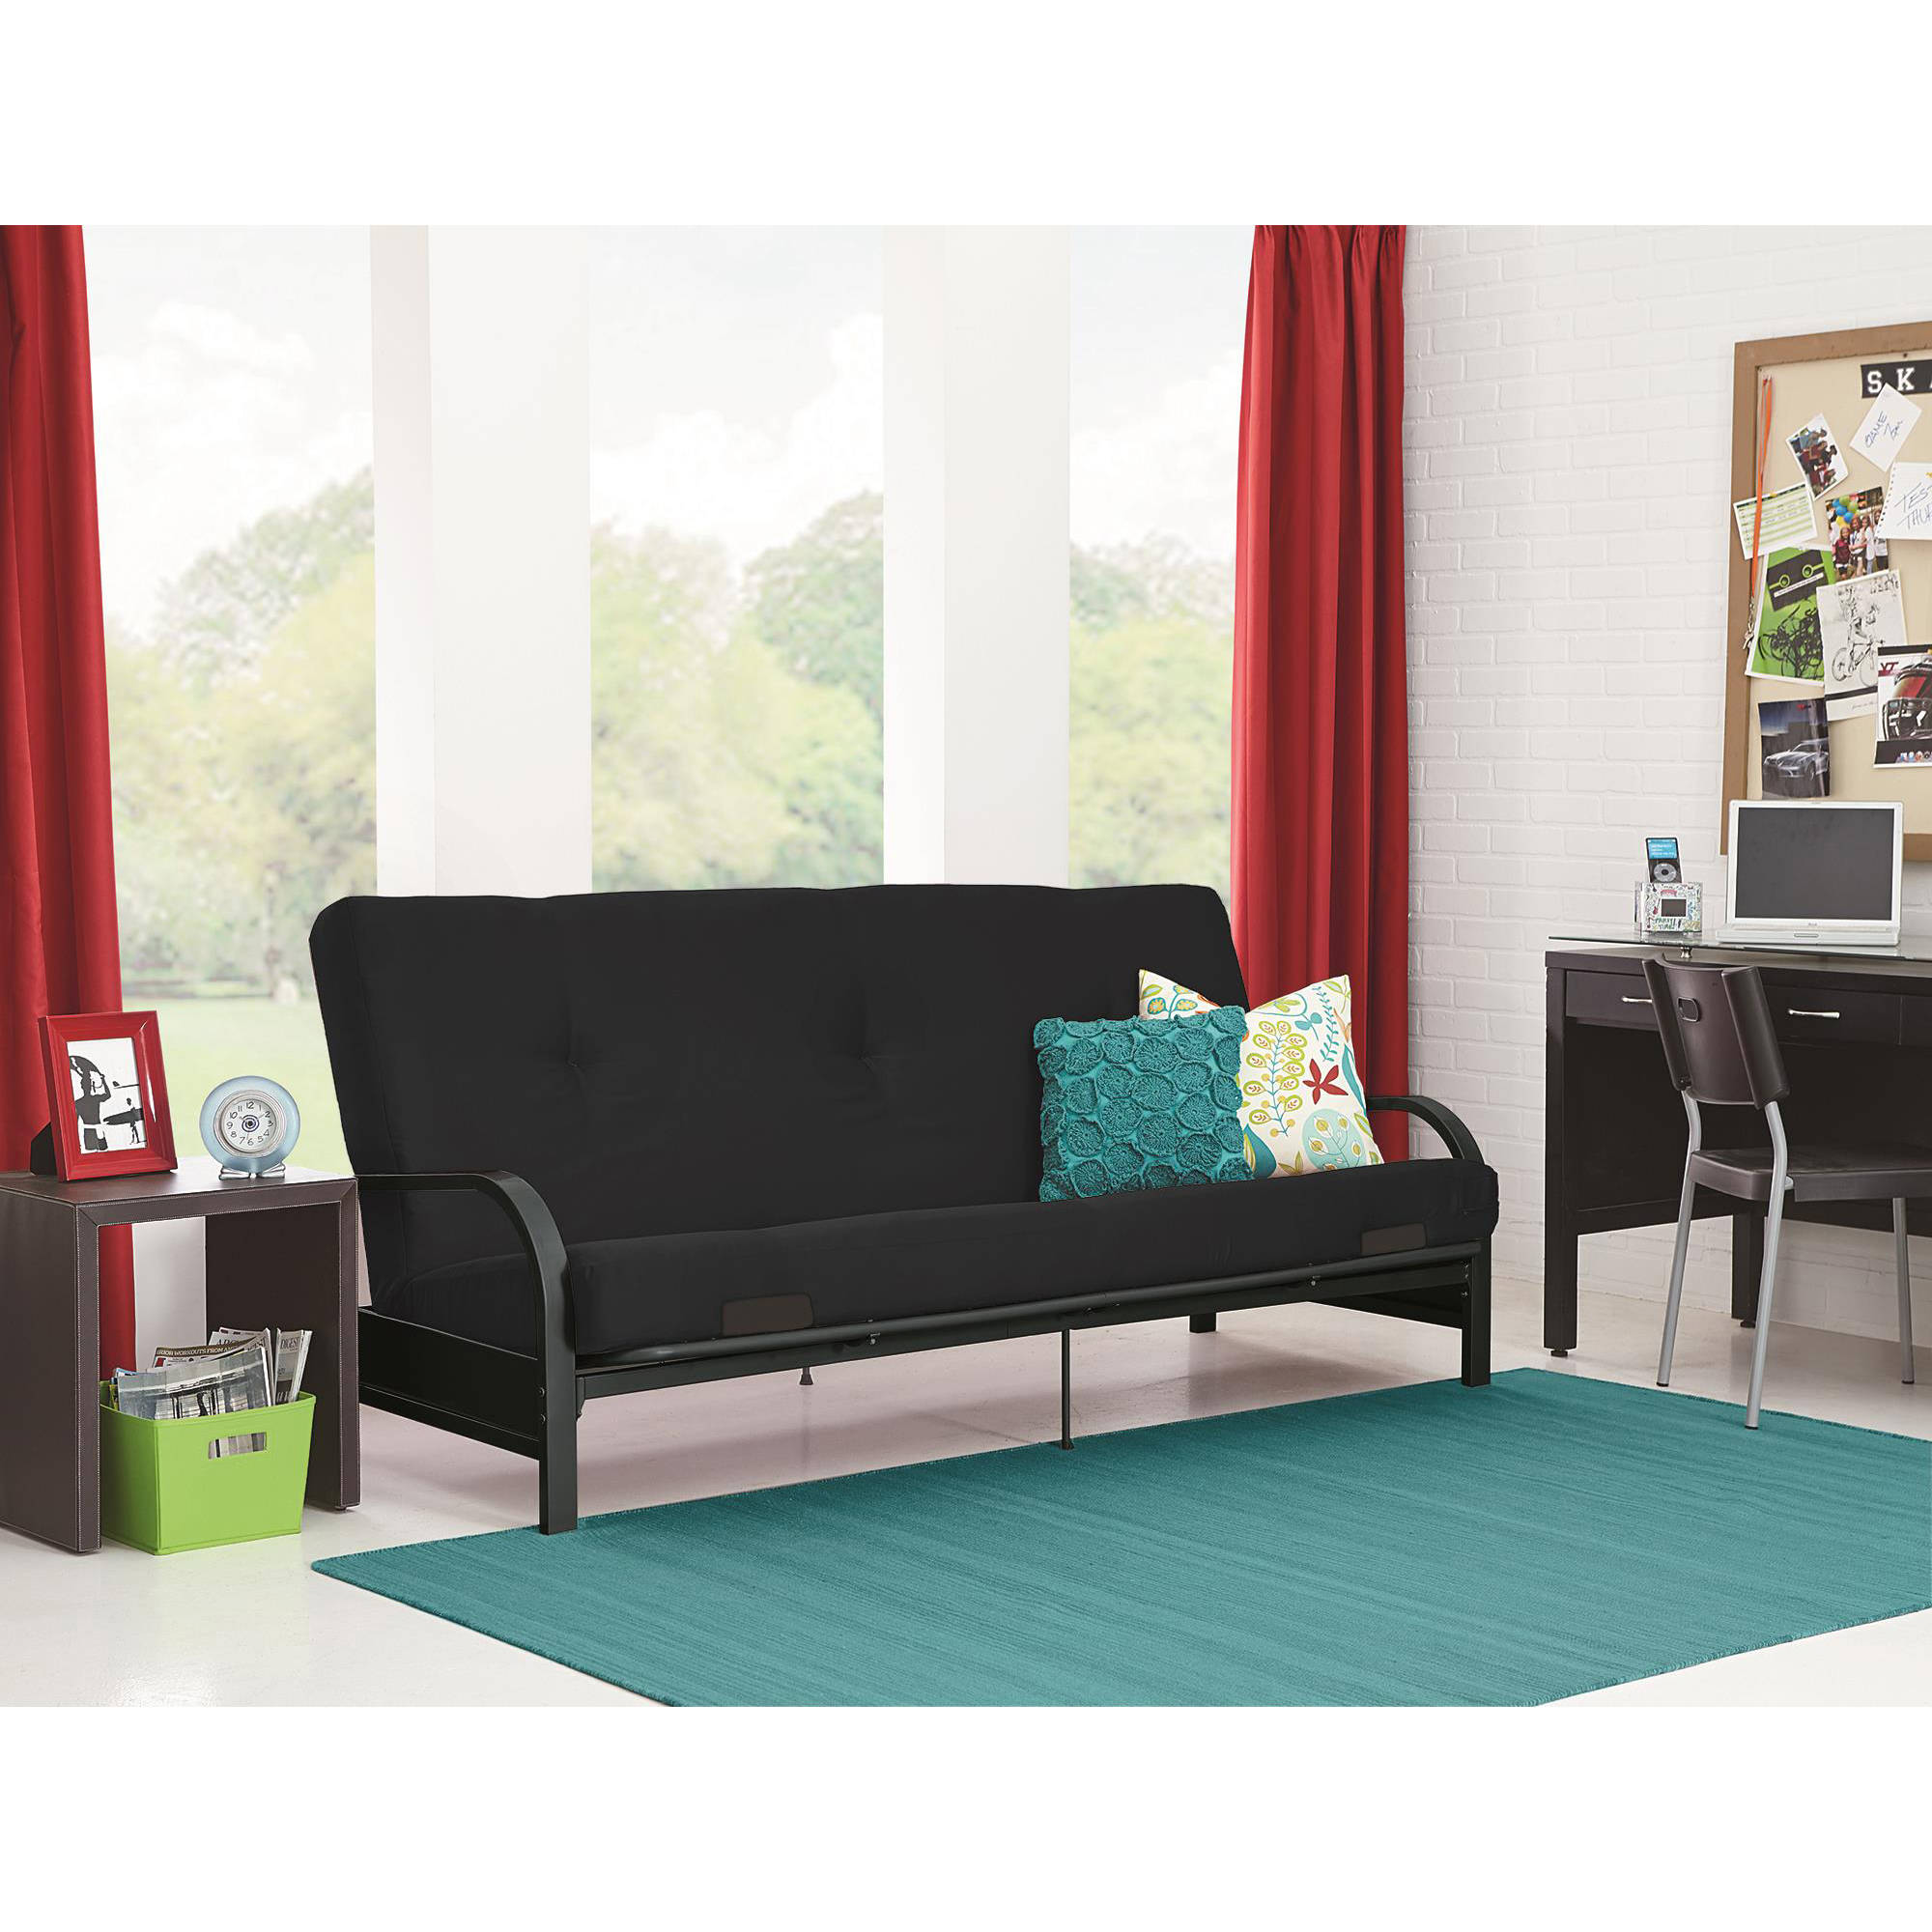 Picture of: Mainstays Black Metal Arm Futon With Full Size Mattress Multiple Colors Available Walmart Com Walmart Com